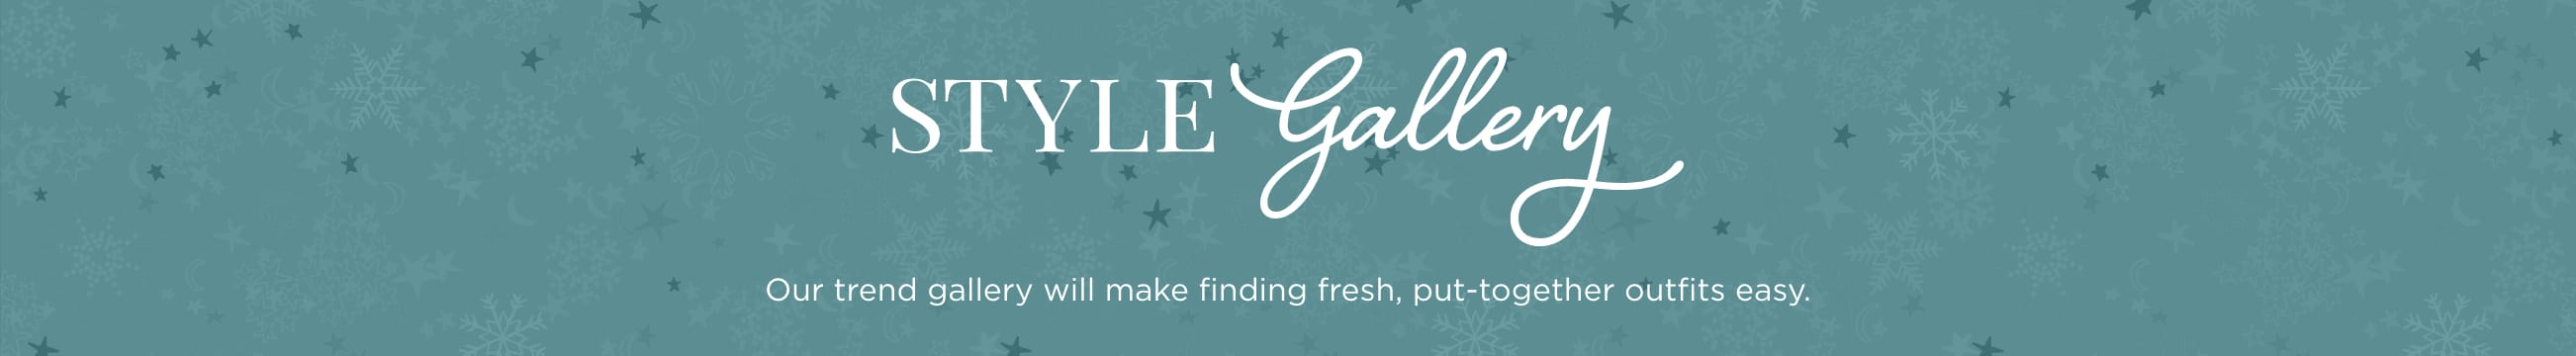 Style Gallery. Our trend gallery will make finding fresh, put-together outfits easy..